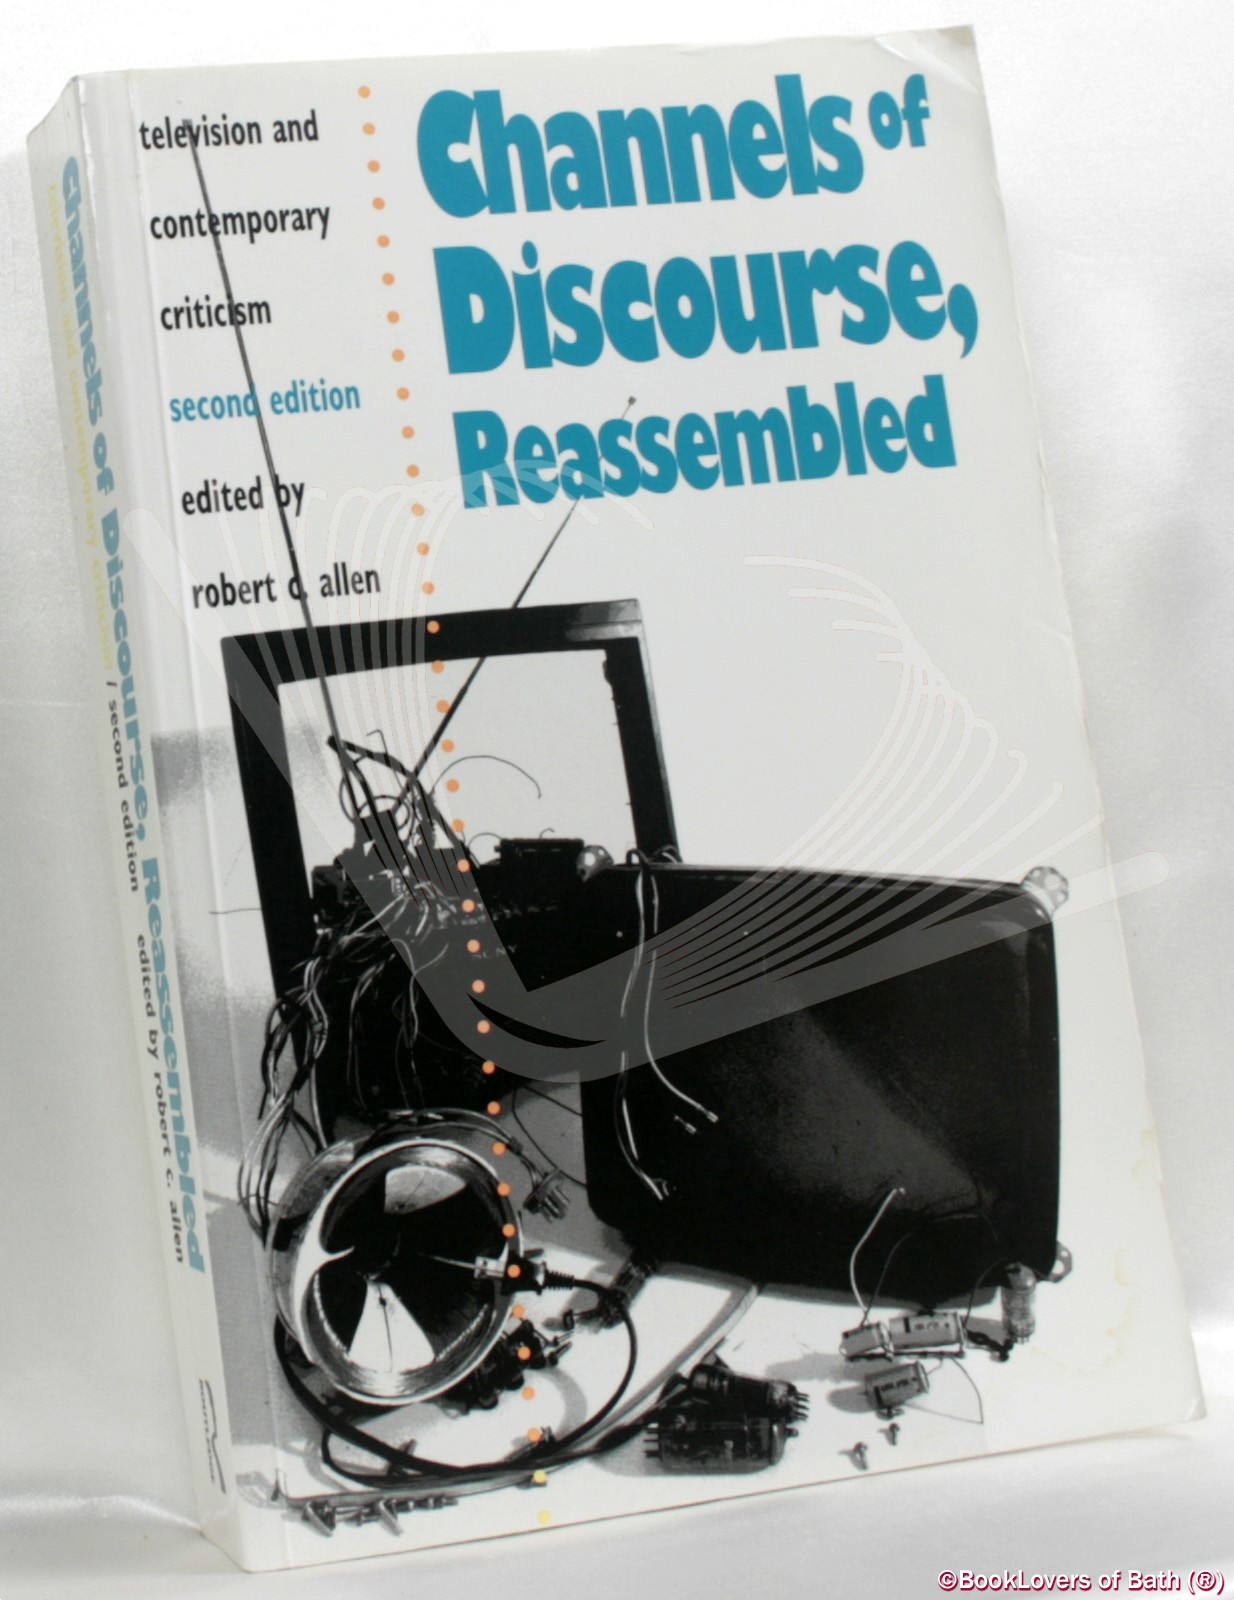 Channels of Discourse, Reassembled: Television and Contemporary Criticism - Robert C. Allen